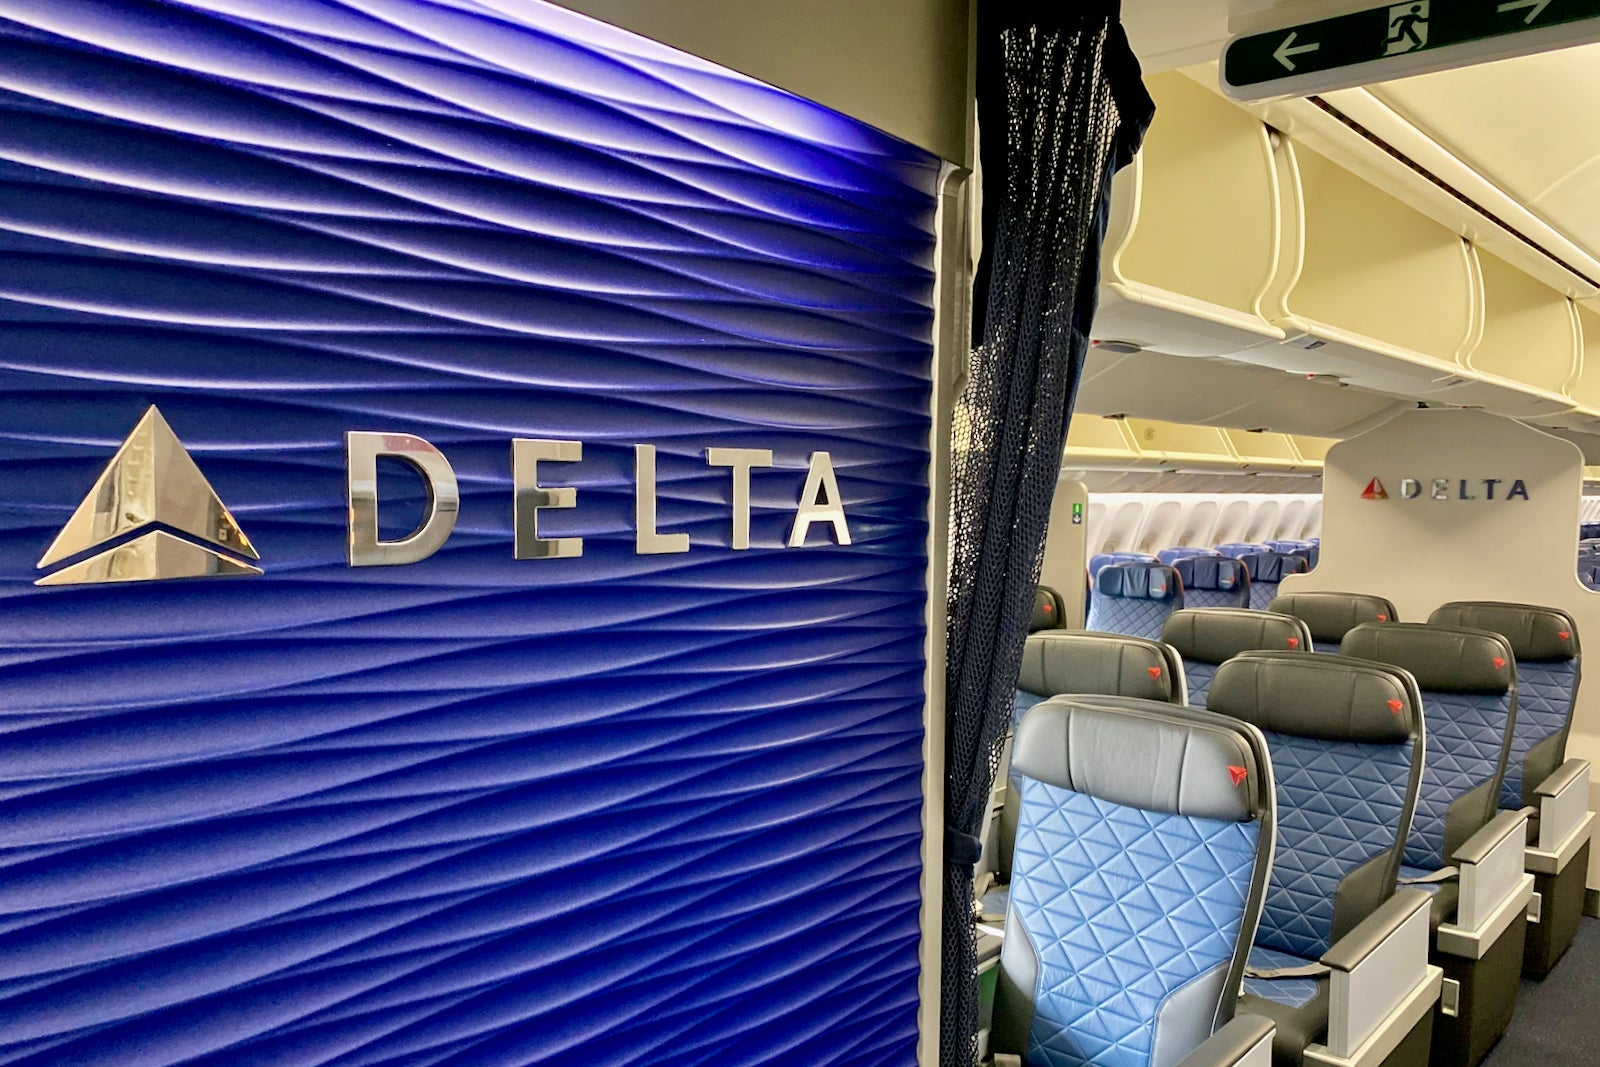 Delta pushes back against American Airlines on a key competitive route - The Points Guy